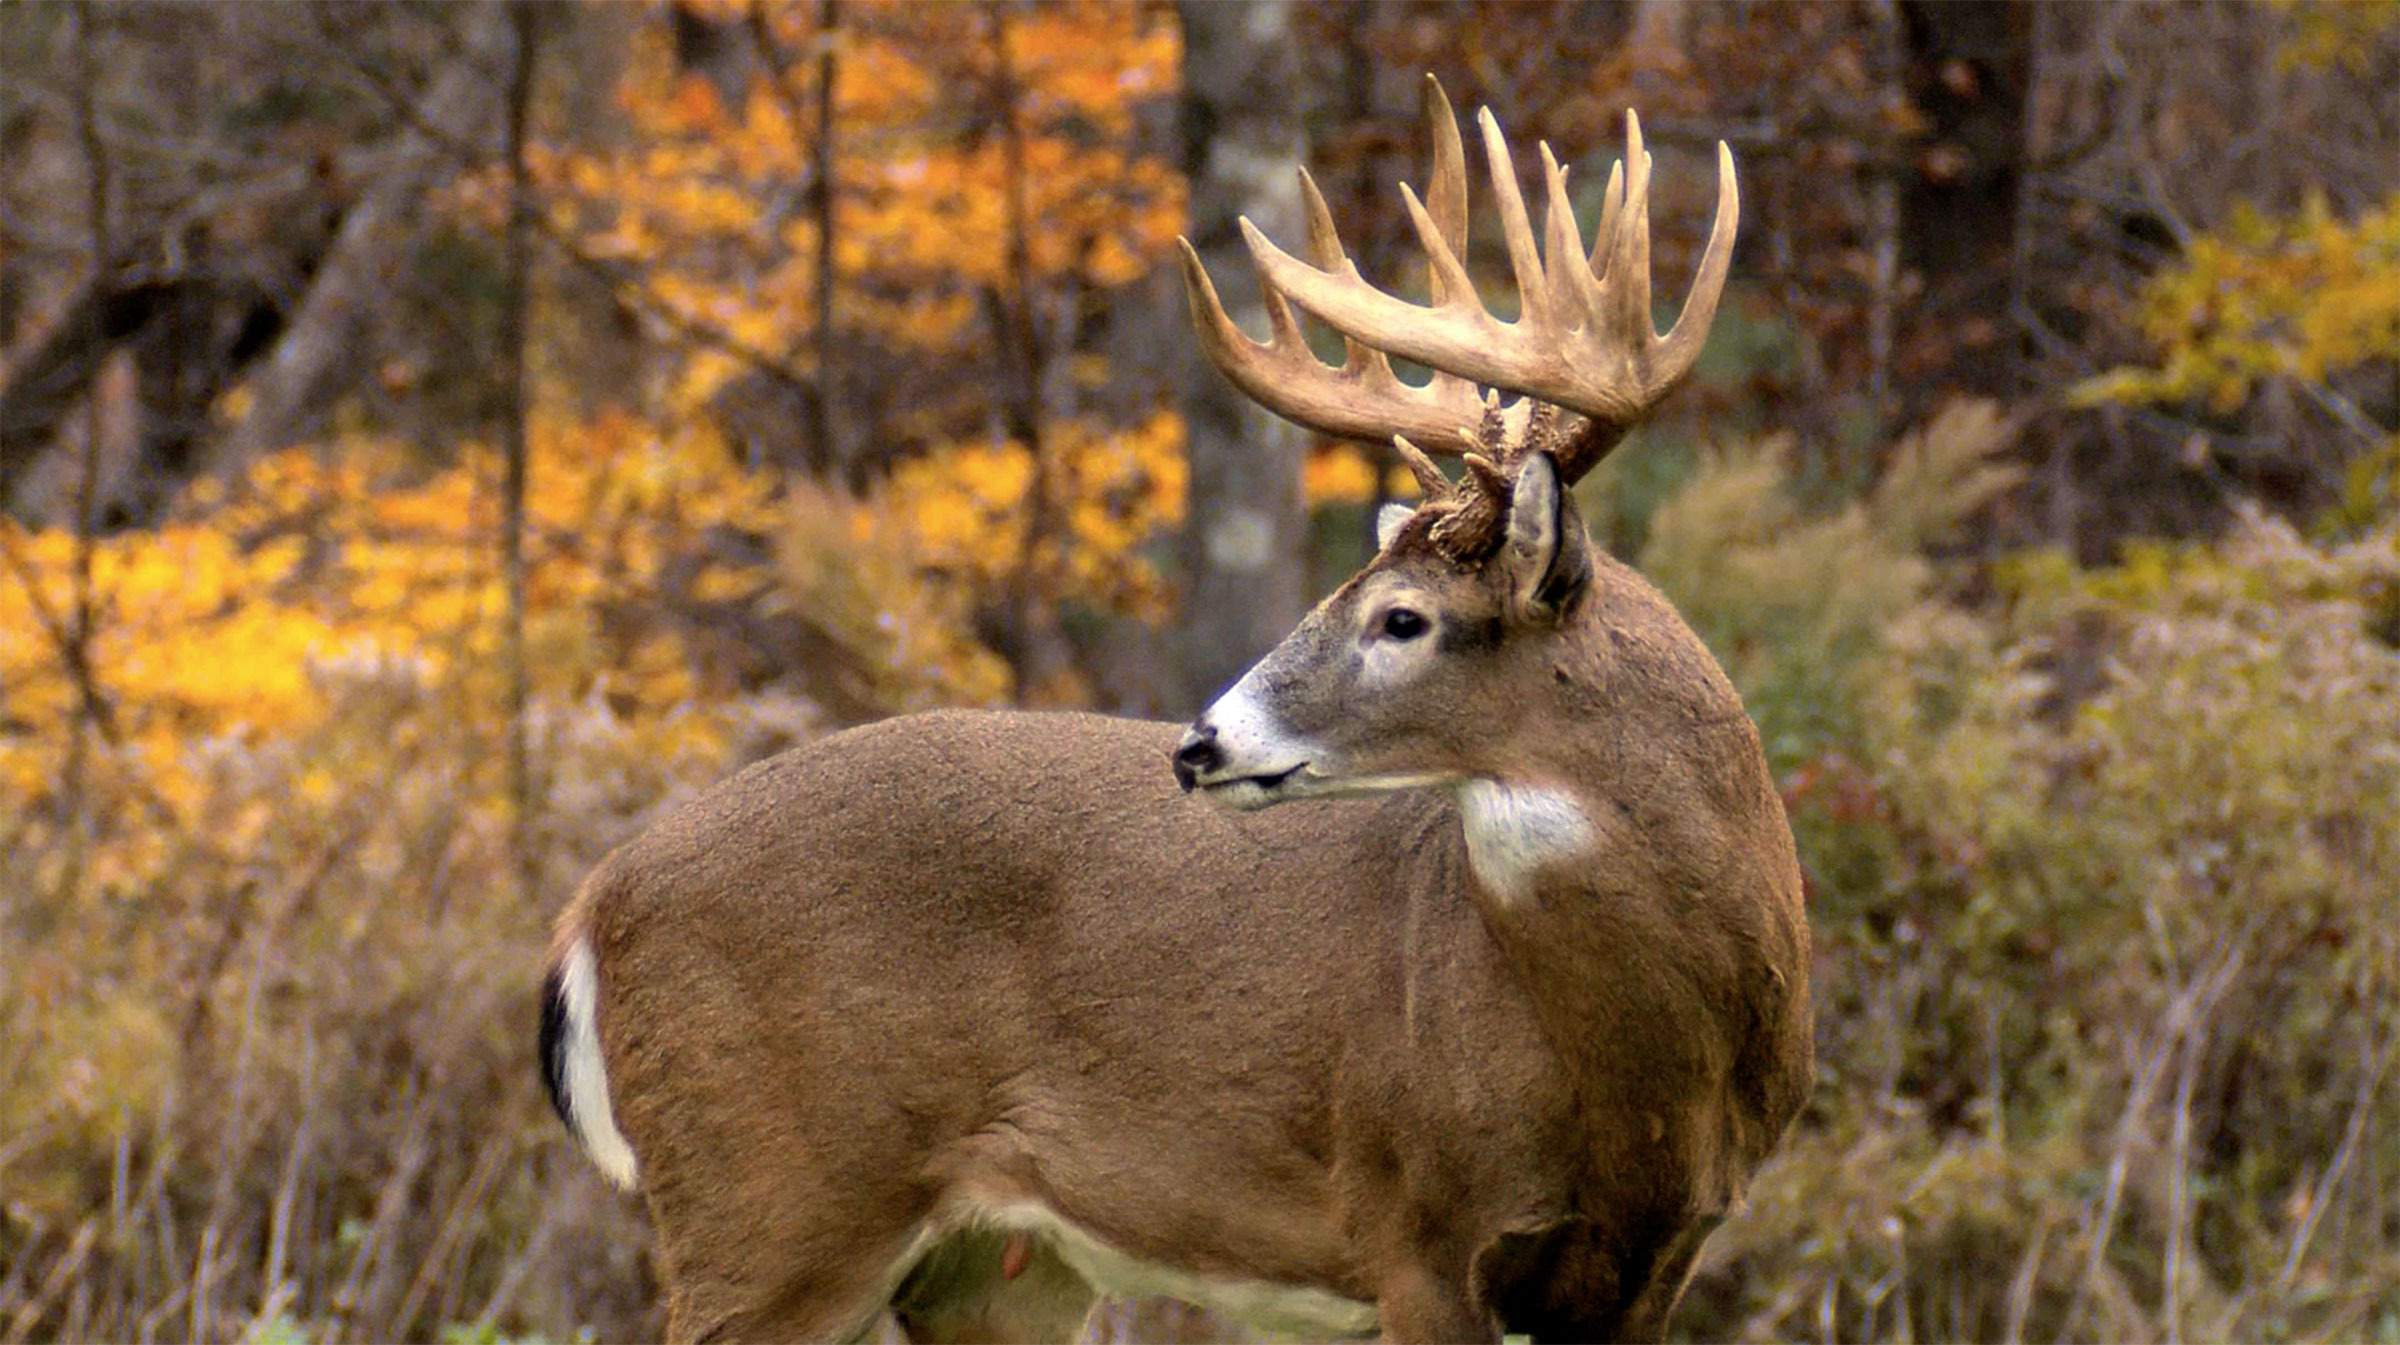 Not making the grade: Illinois gets 'B' as deer hunting state ...